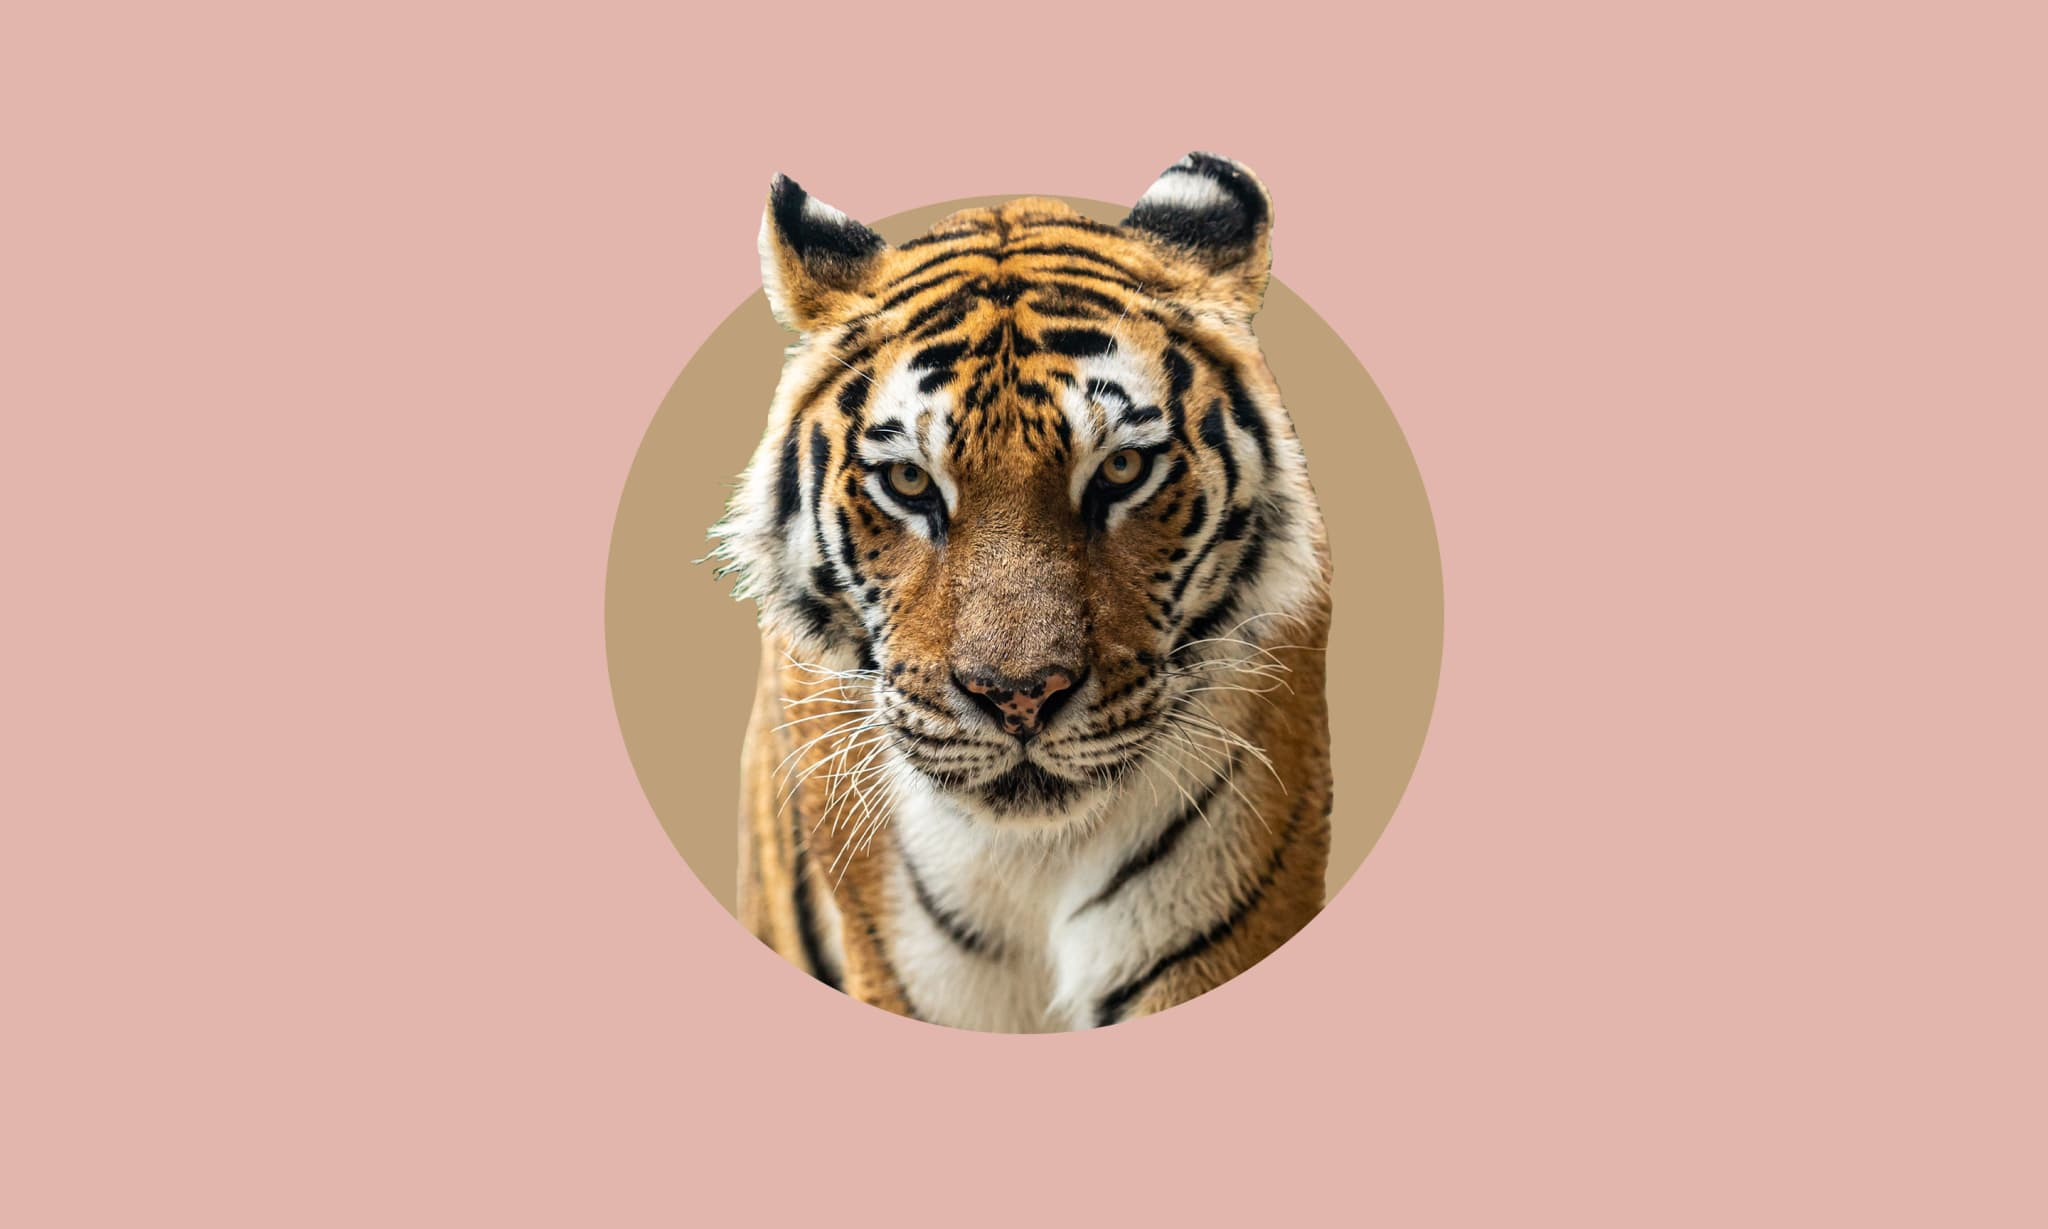 A tiger's head cutout onto a pink background.